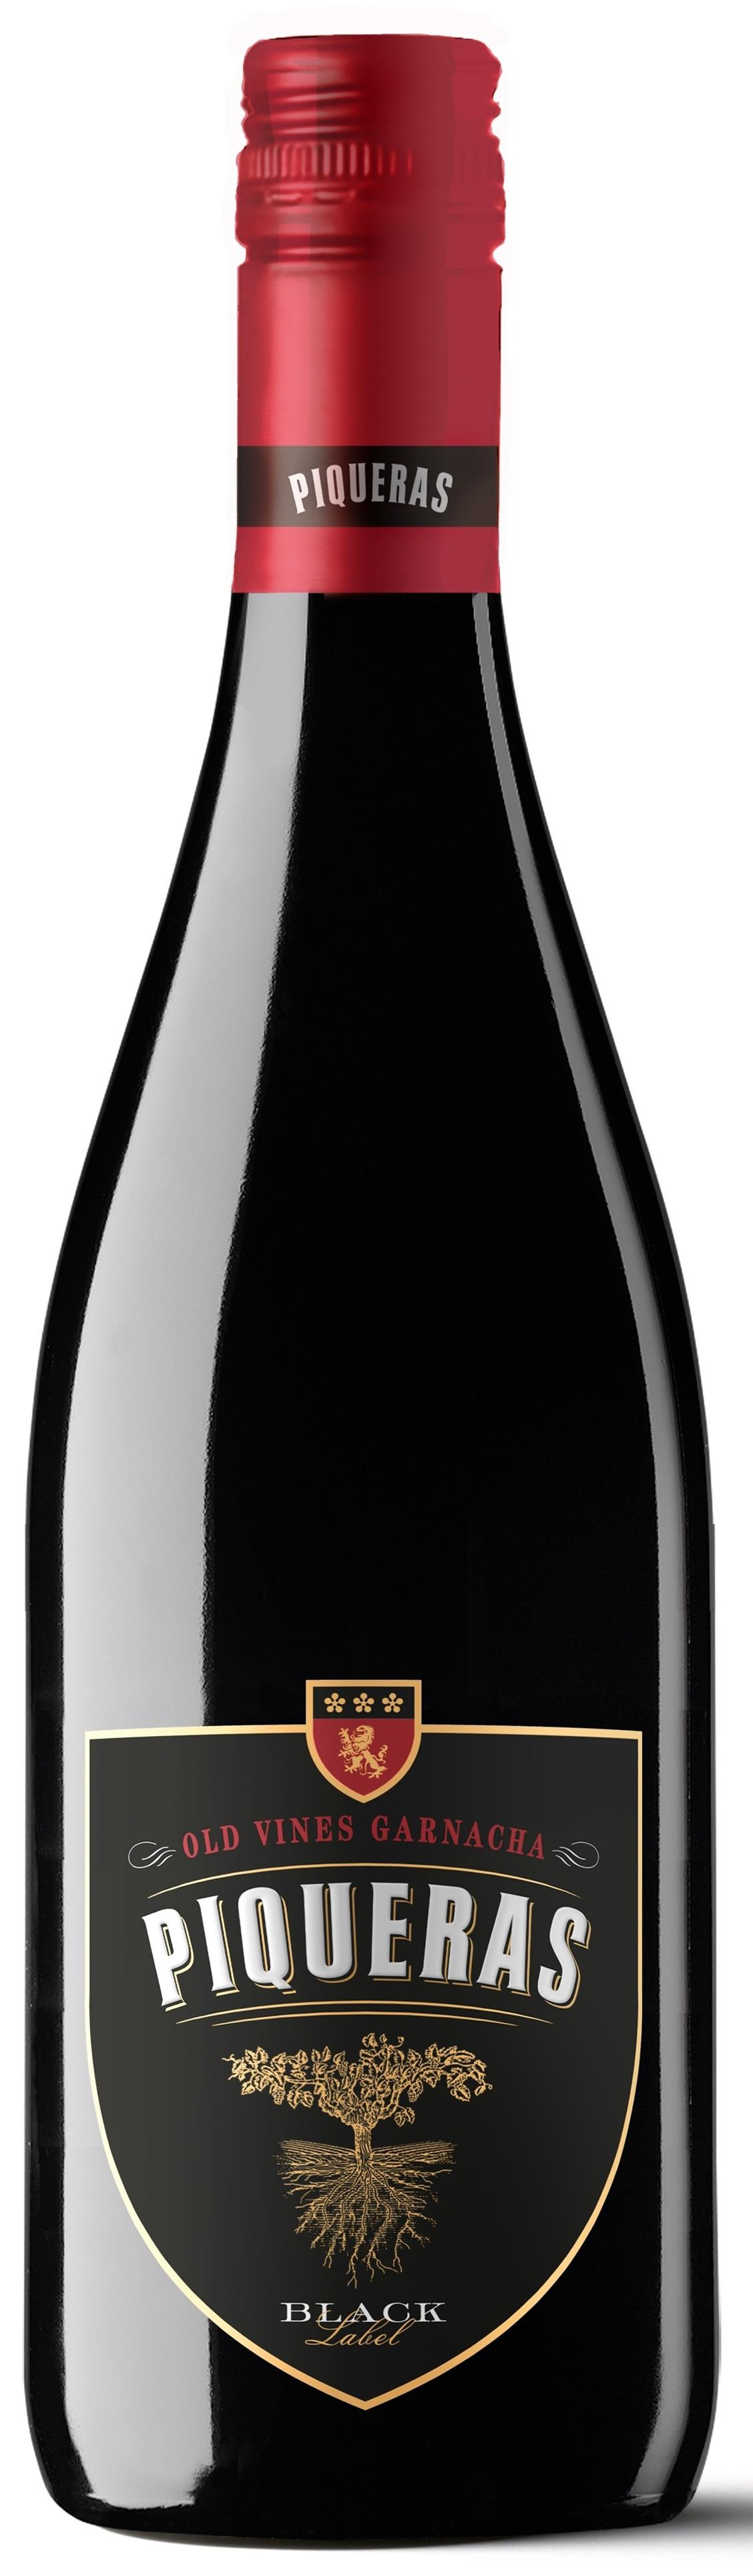 Piqueras Black Label Old Vines Garnacha 2014